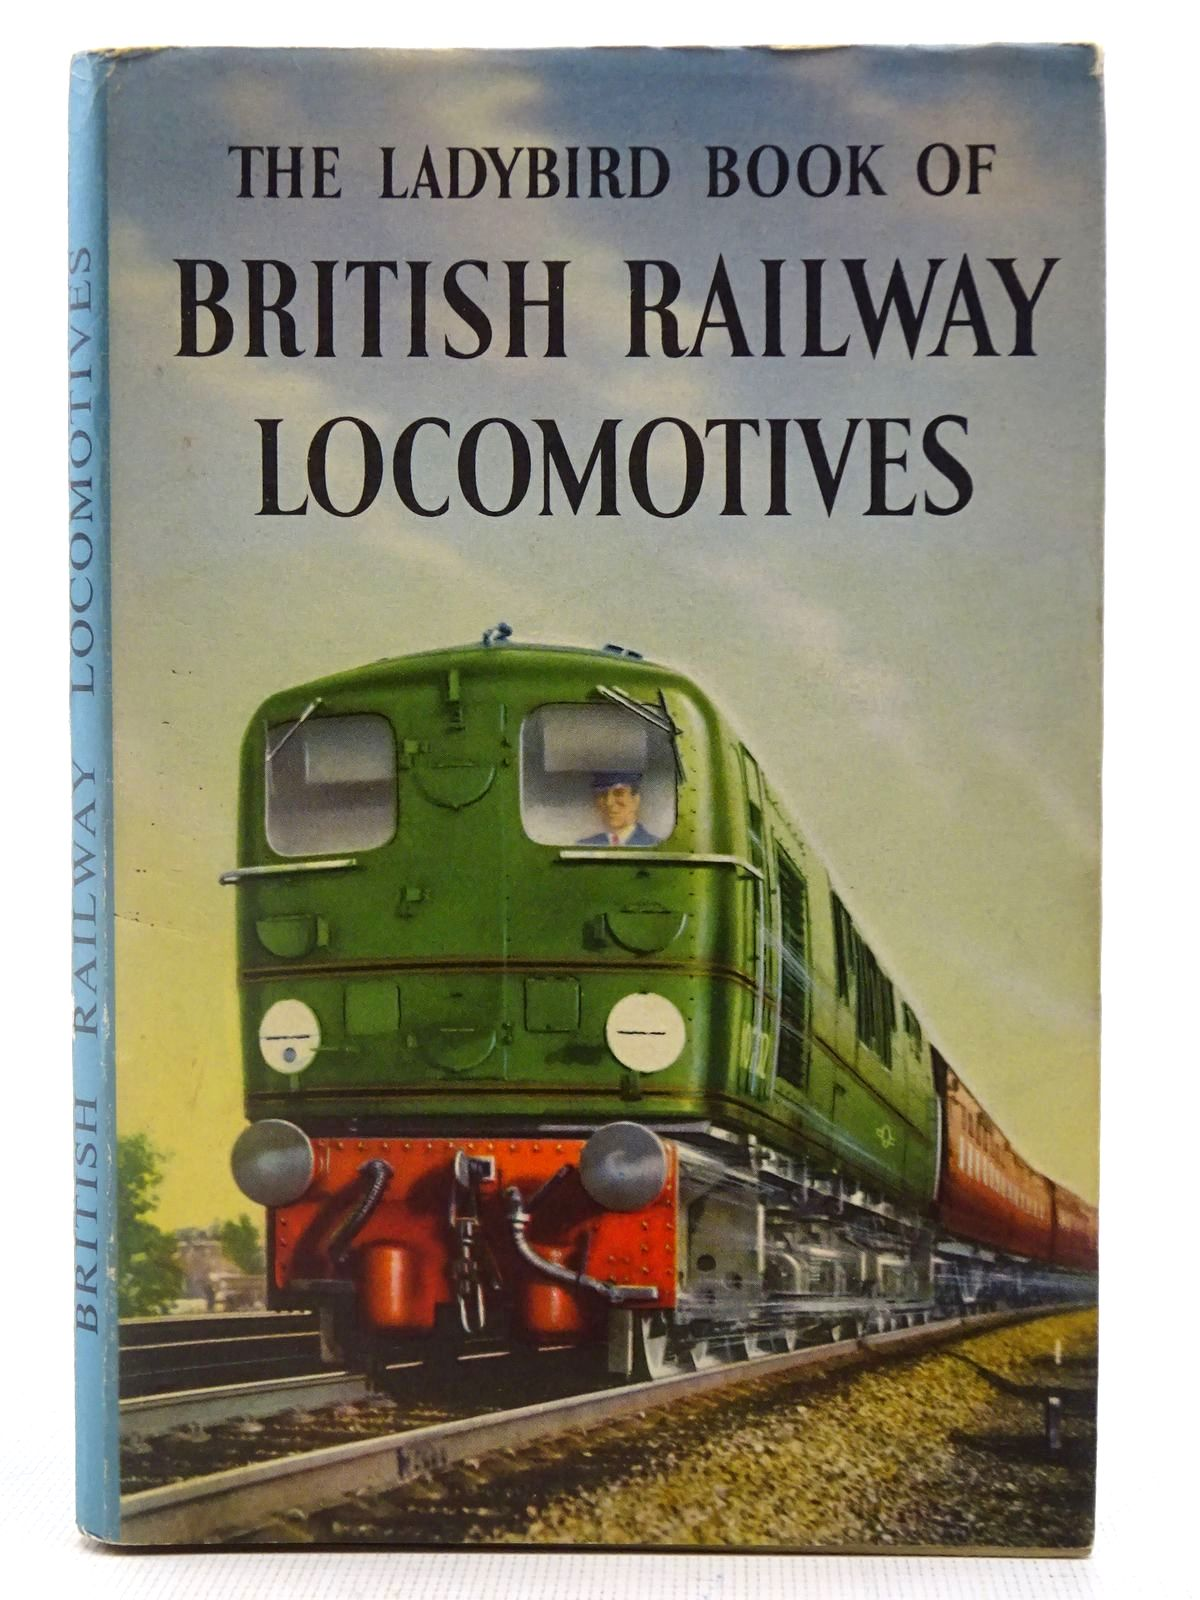 Photo of THE LADYBIRD BOOK OF BRITISH RAILWAY LOCOMOTIVES written by Joiner, D.L. published by Wills & Hepworth Ltd. (STOCK CODE: 2127478)  for sale by Stella & Rose's Books